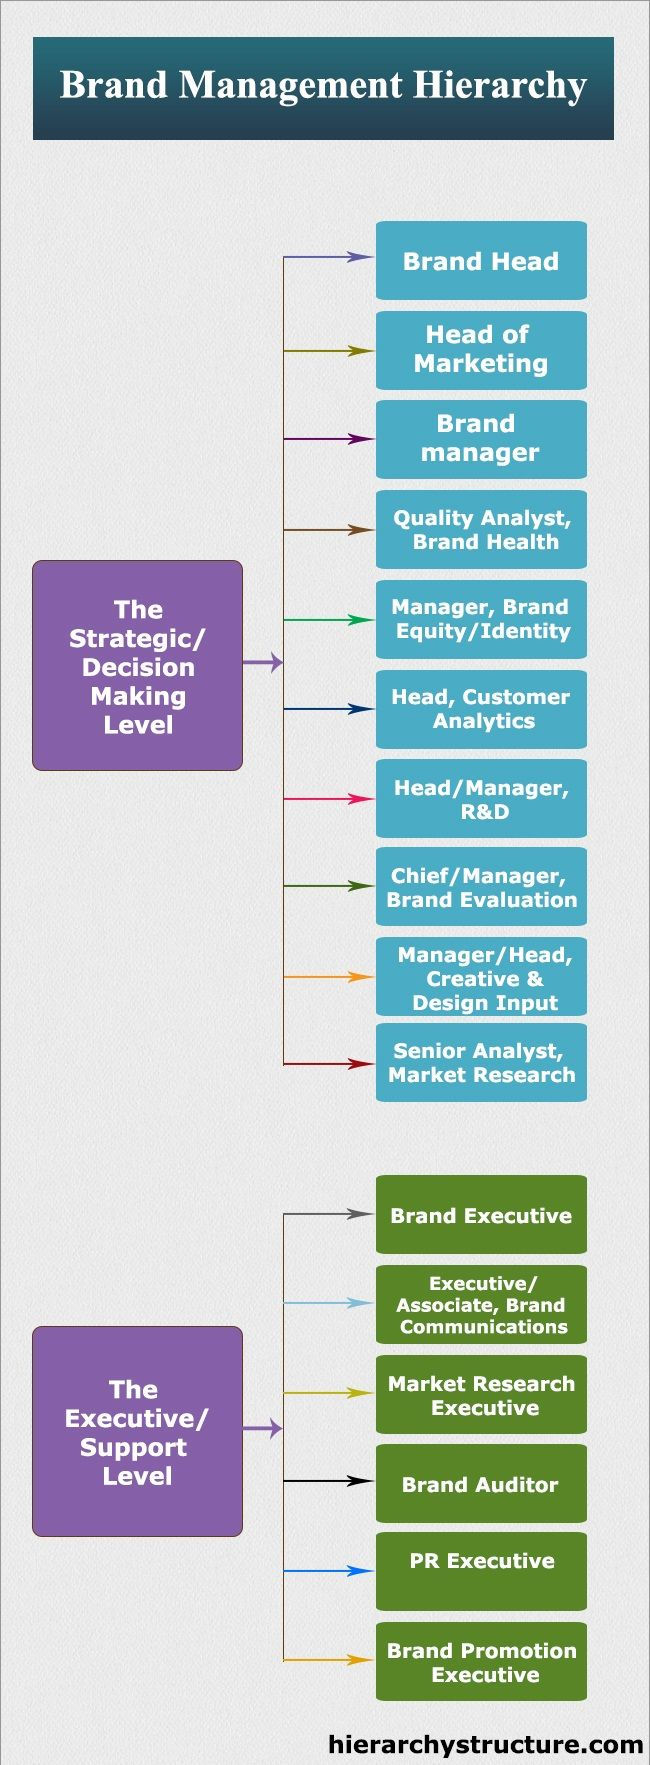 Brand Management Hierarchy - Via W Hail